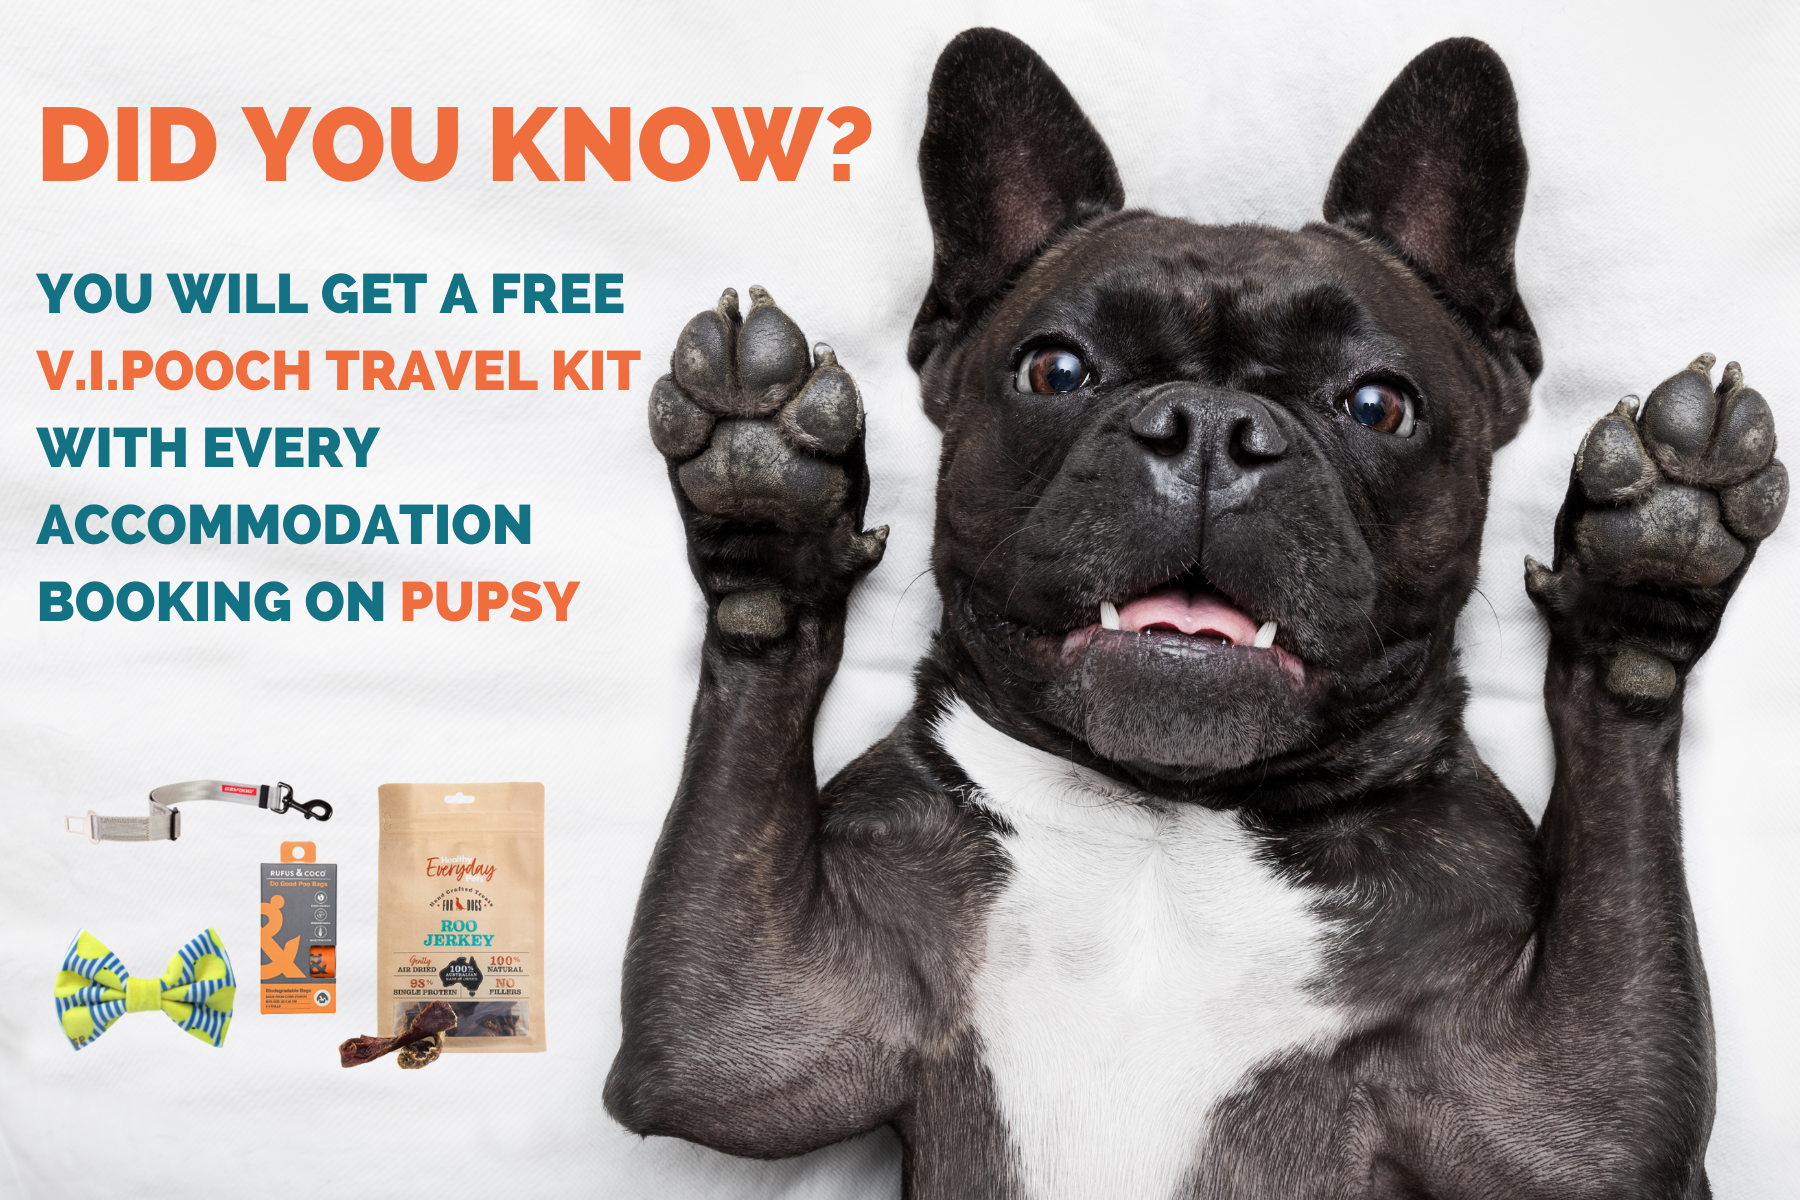 VIPOOCH TRAVEL KIT ACCOMMODATION PAGE